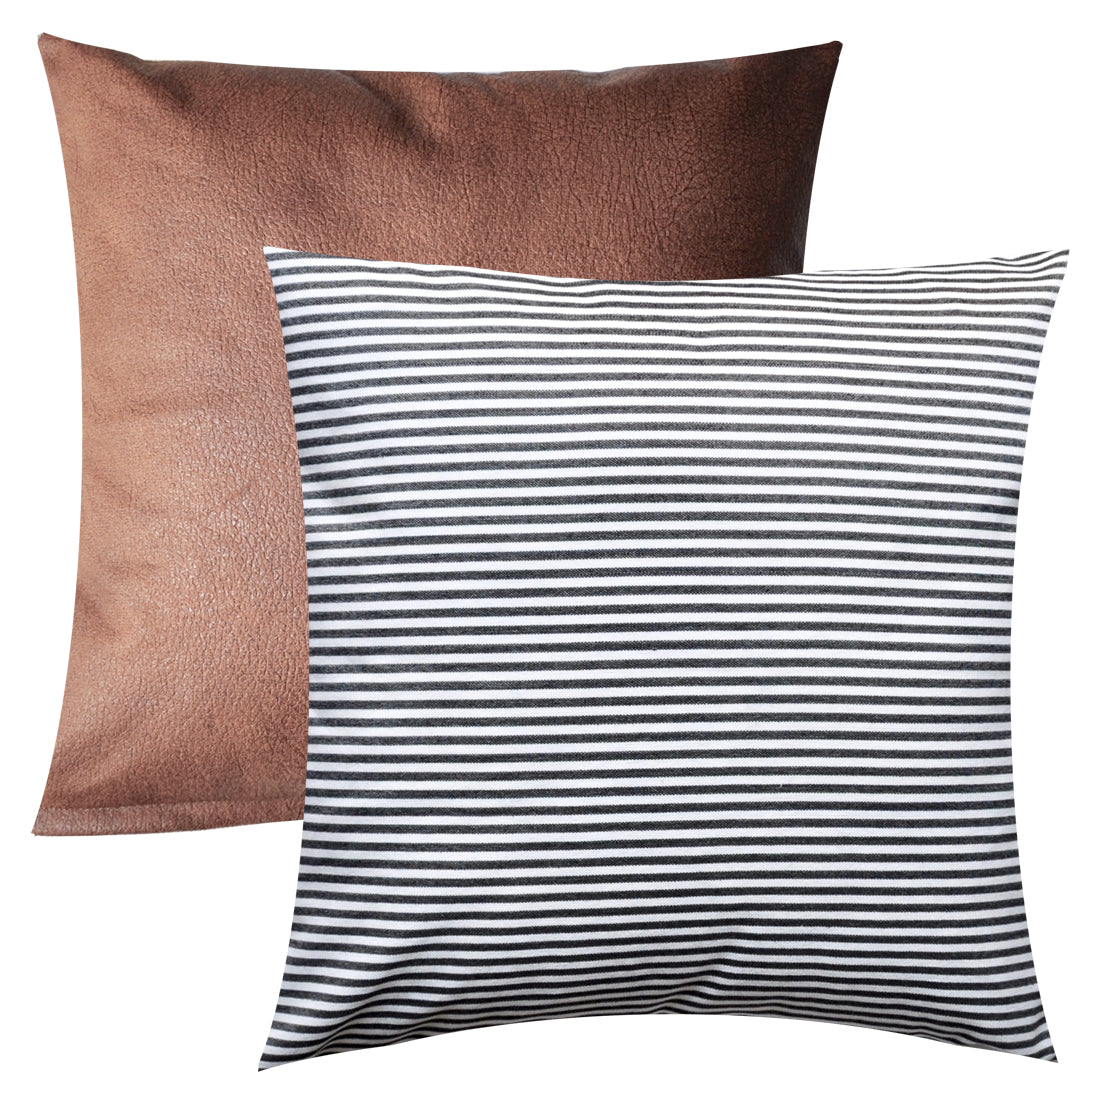 PANDICORN Set of 2 Farmhouse Decorative Throw Pillow Covers, Rustic Black and White Striped Throw Pillows Case, Brown Faux Leather Textured Cushion Cover for Couch Sofa, 18 x 18 Inch